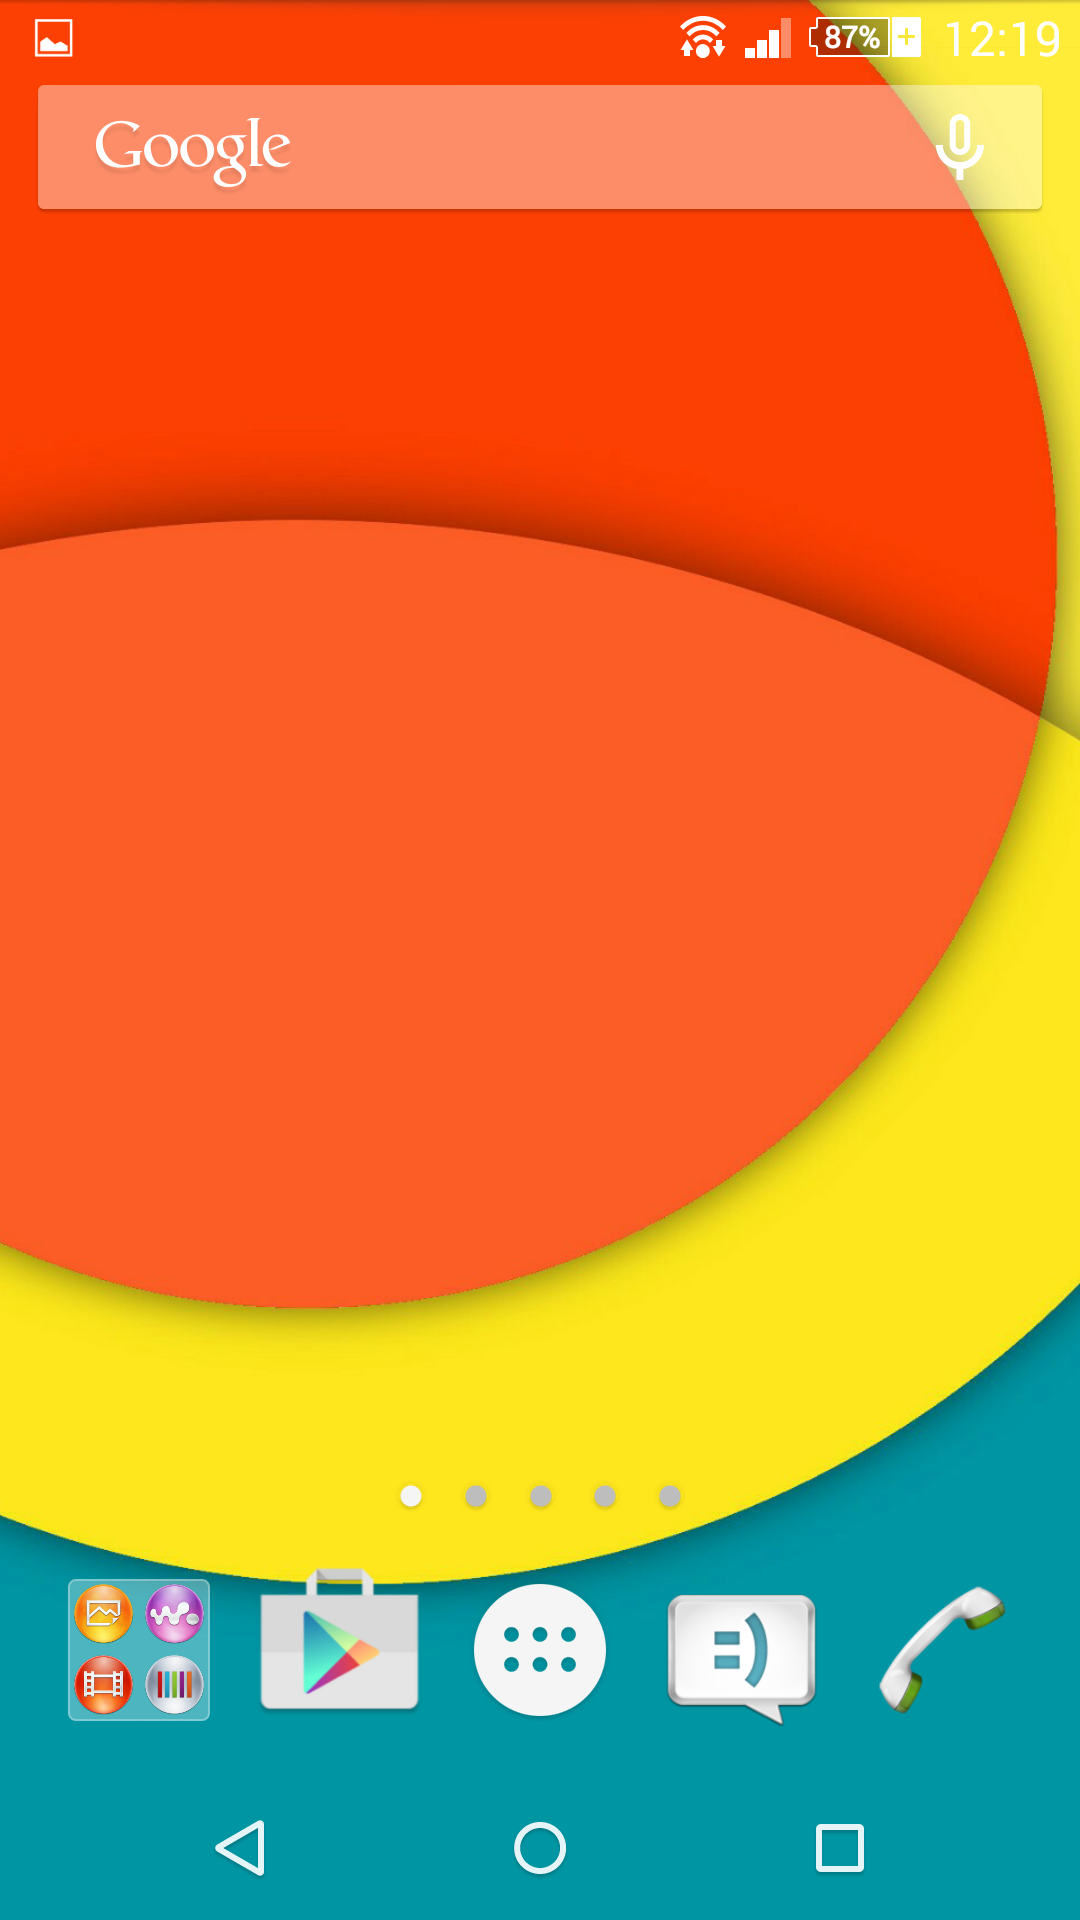 Google Material Design Wallpapers Archives Gizmo Bolt Exposing